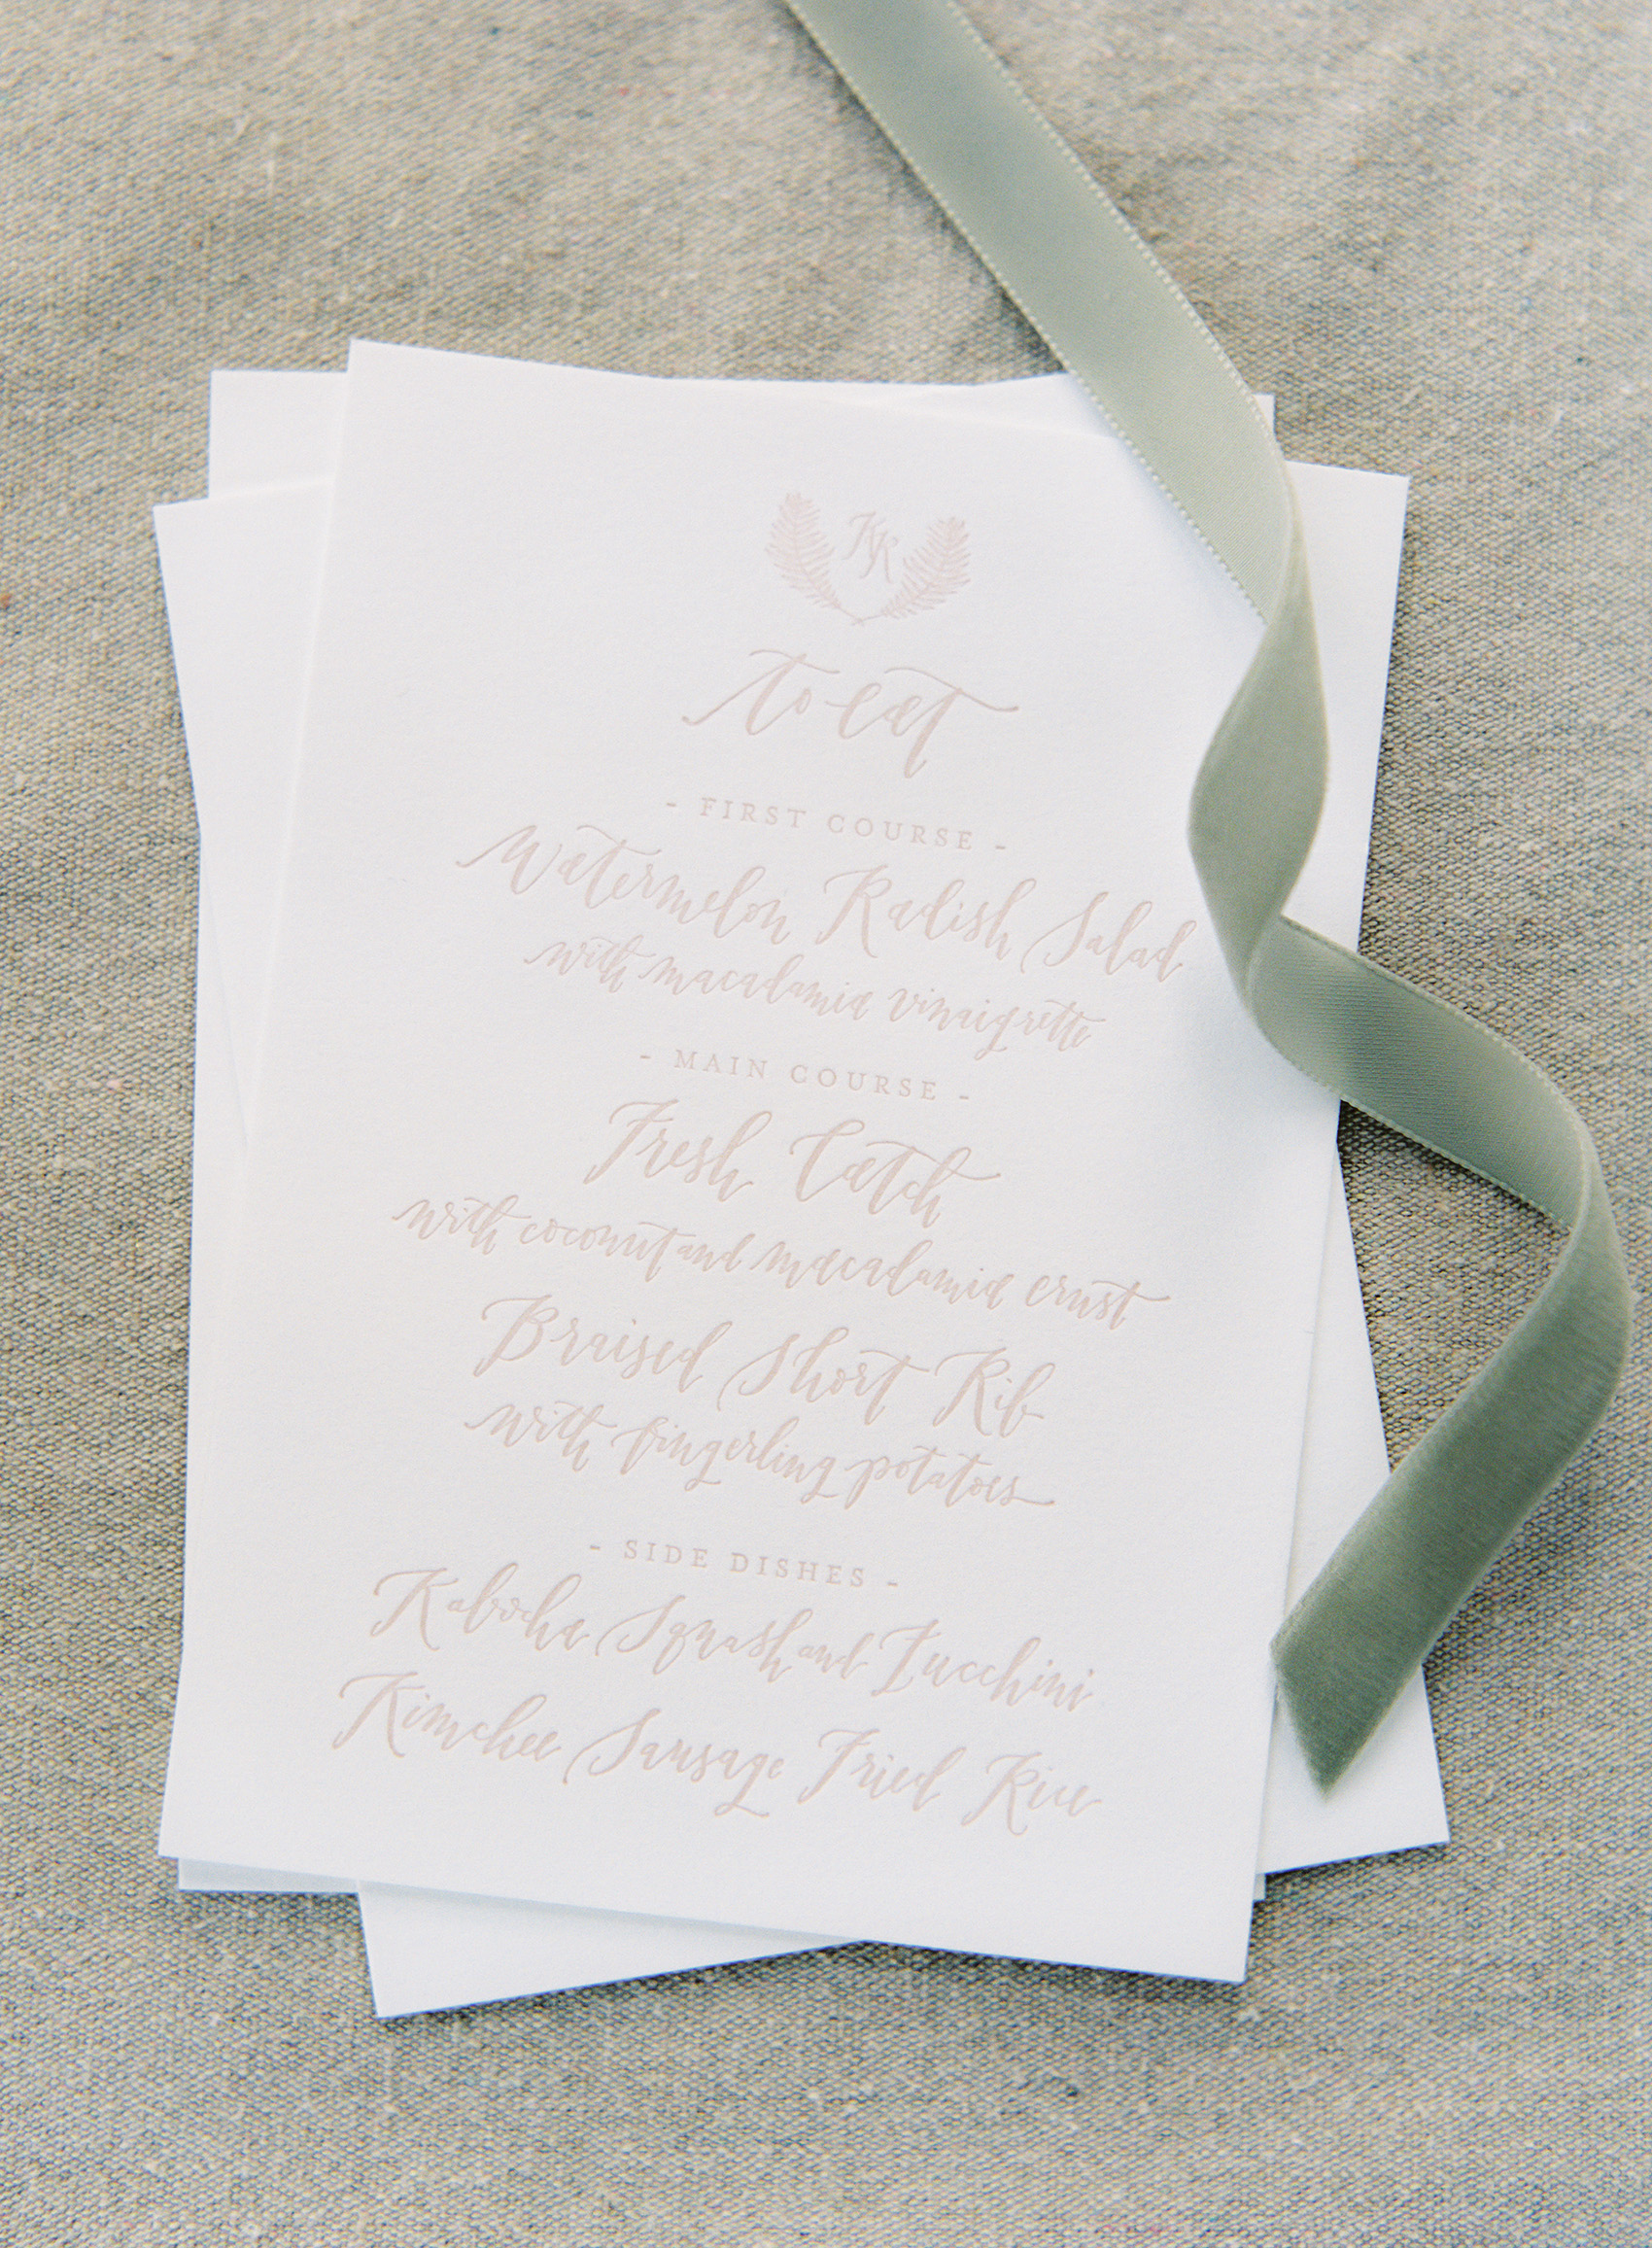 la Happy Design and Calligraphy letterpress menu